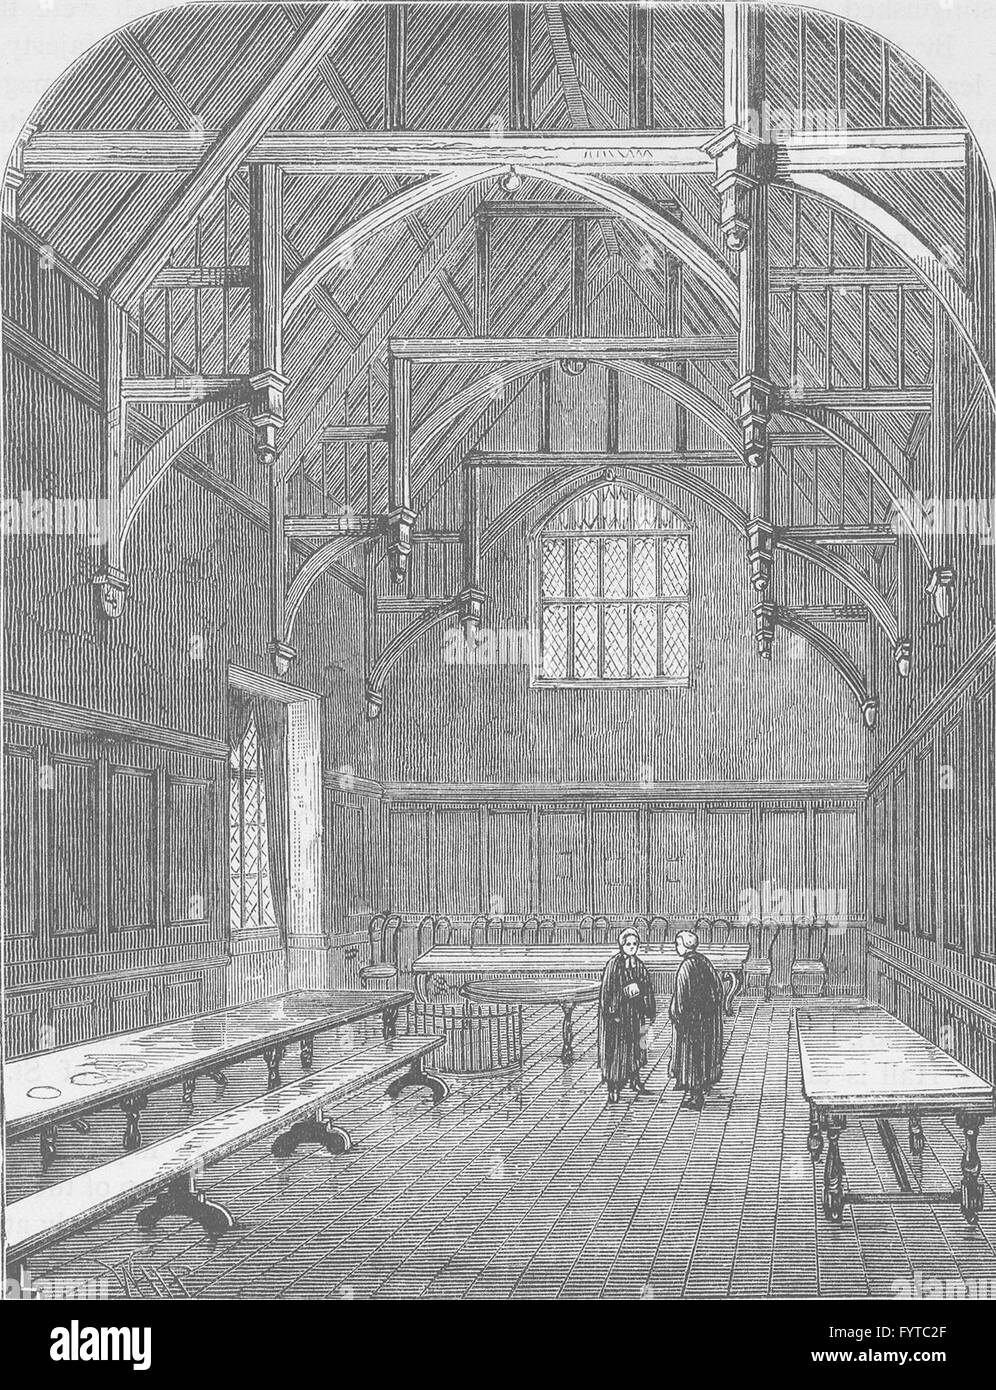 THE HOLBORN INNS OF COURT AND CHANCERY: The Hall of Gray's Inn. London, c1880 Stock Photo